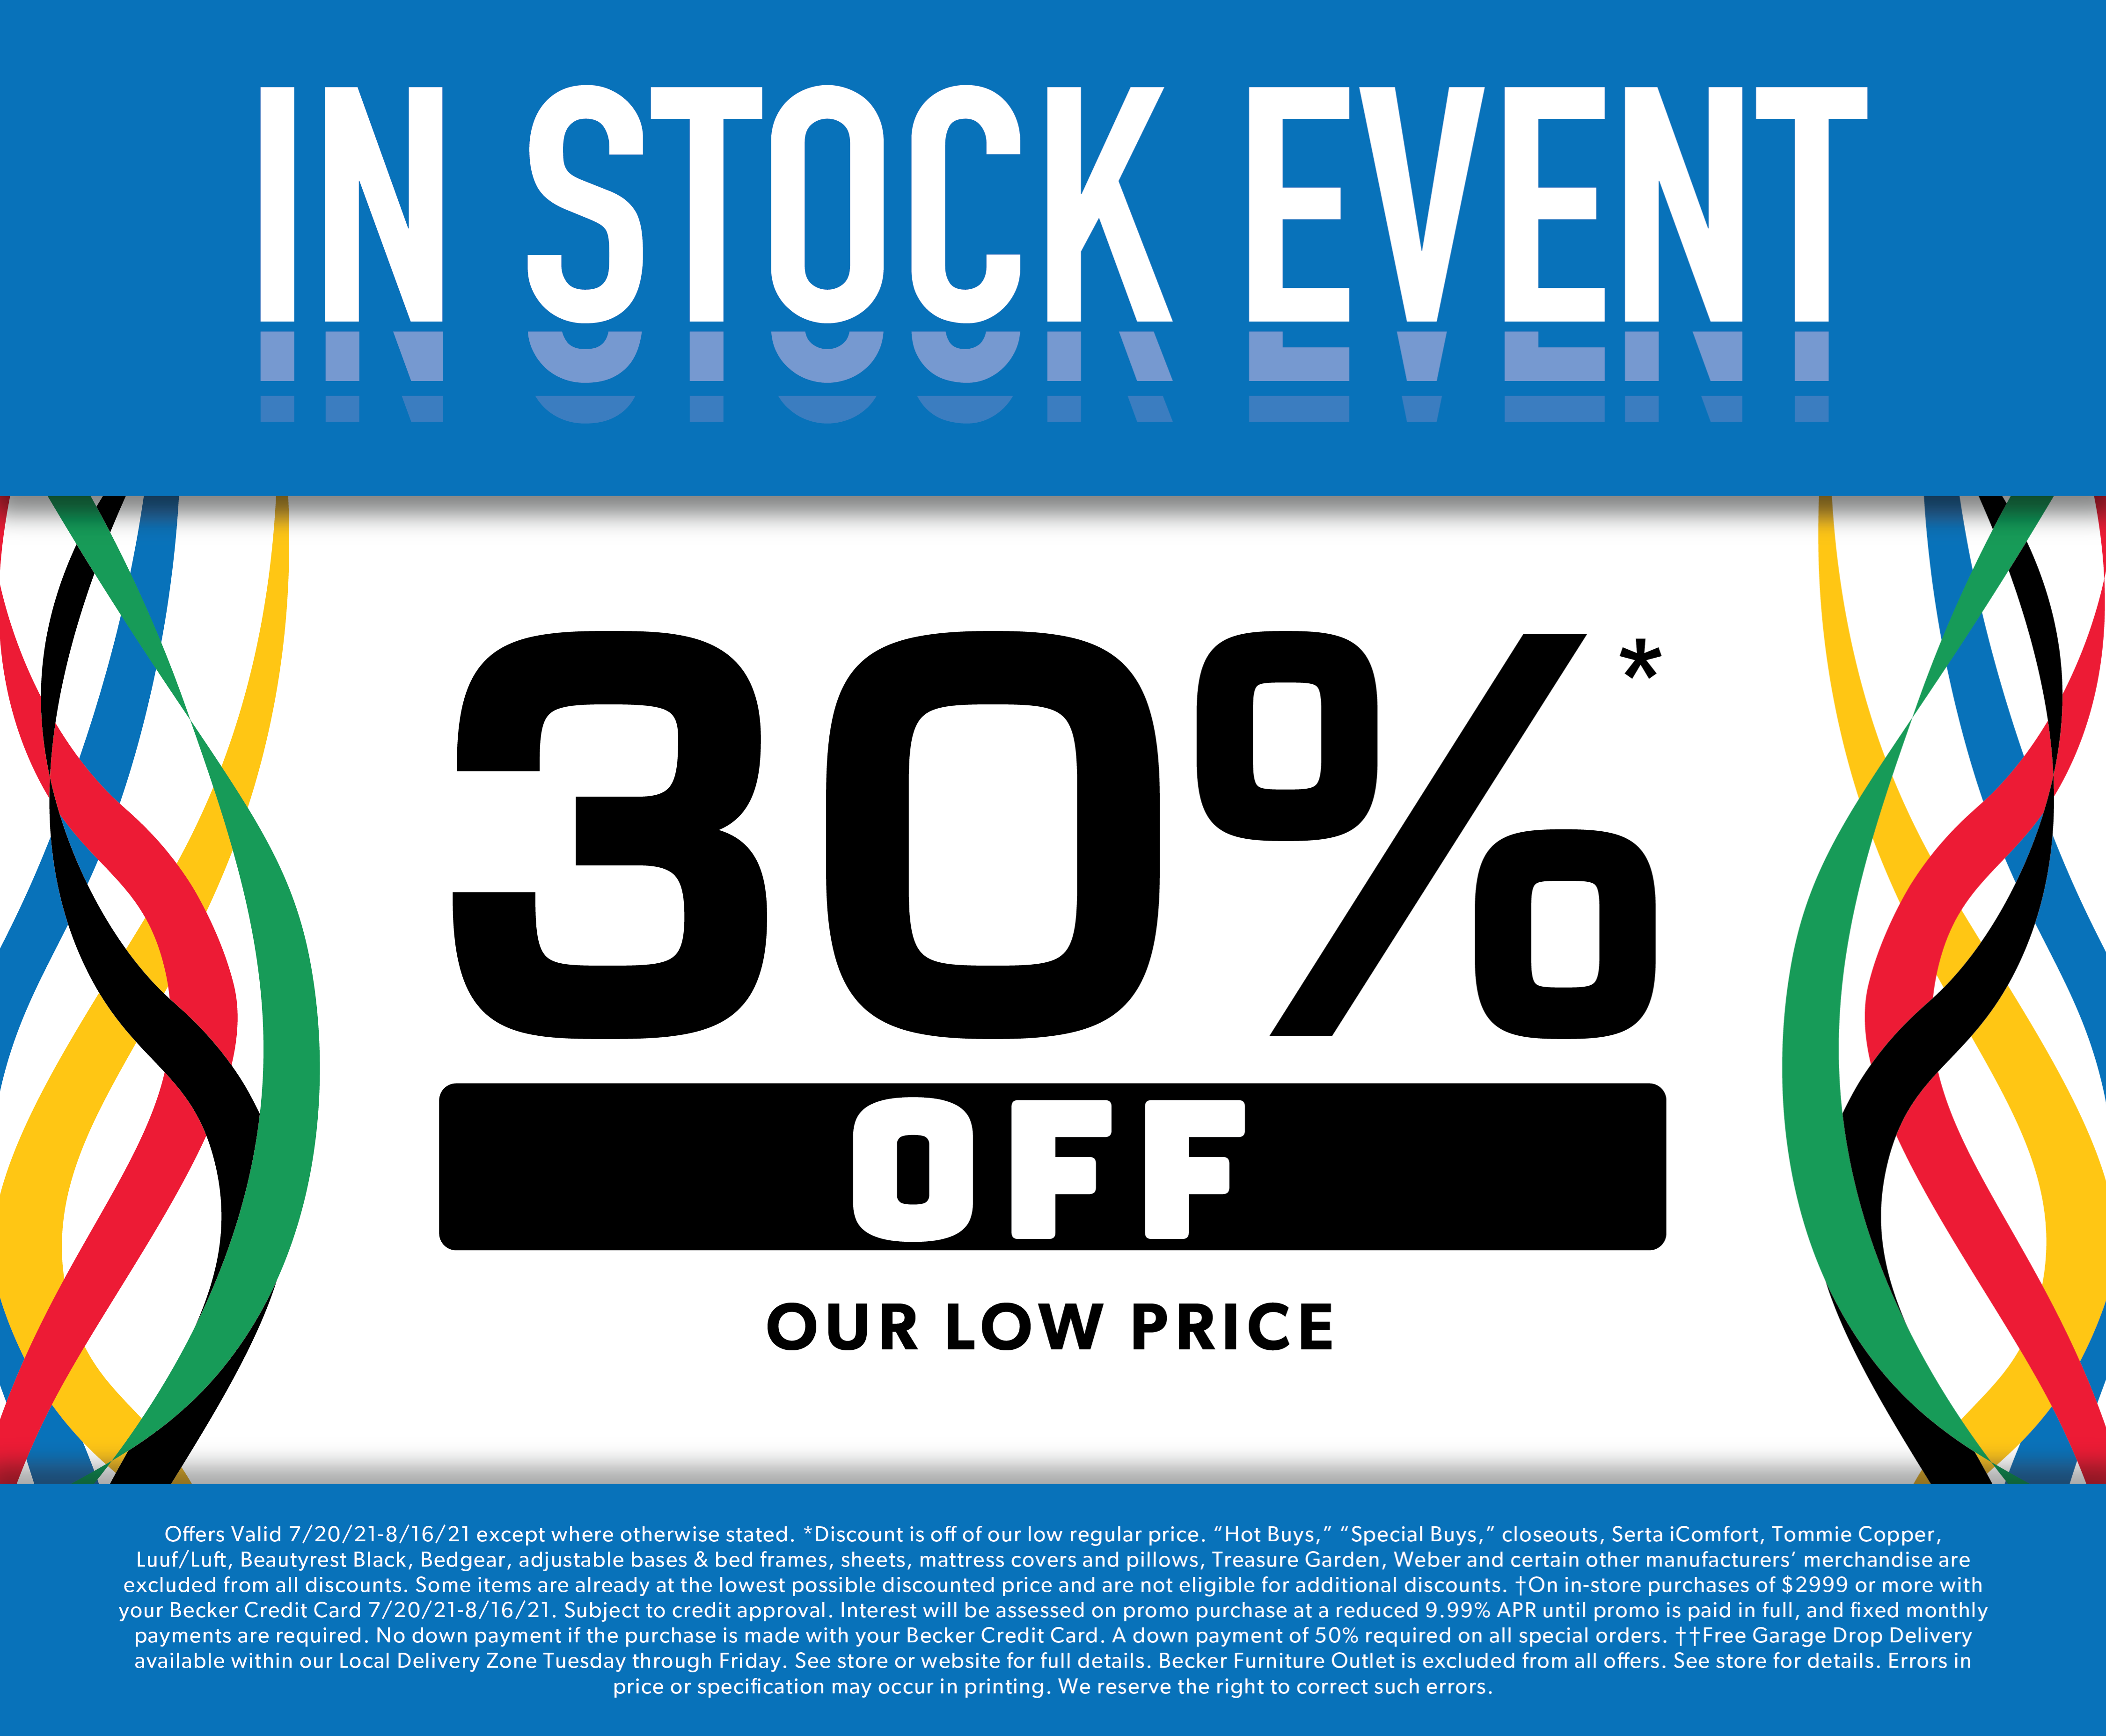 IN STOCK EVENT GOING ON NOW!